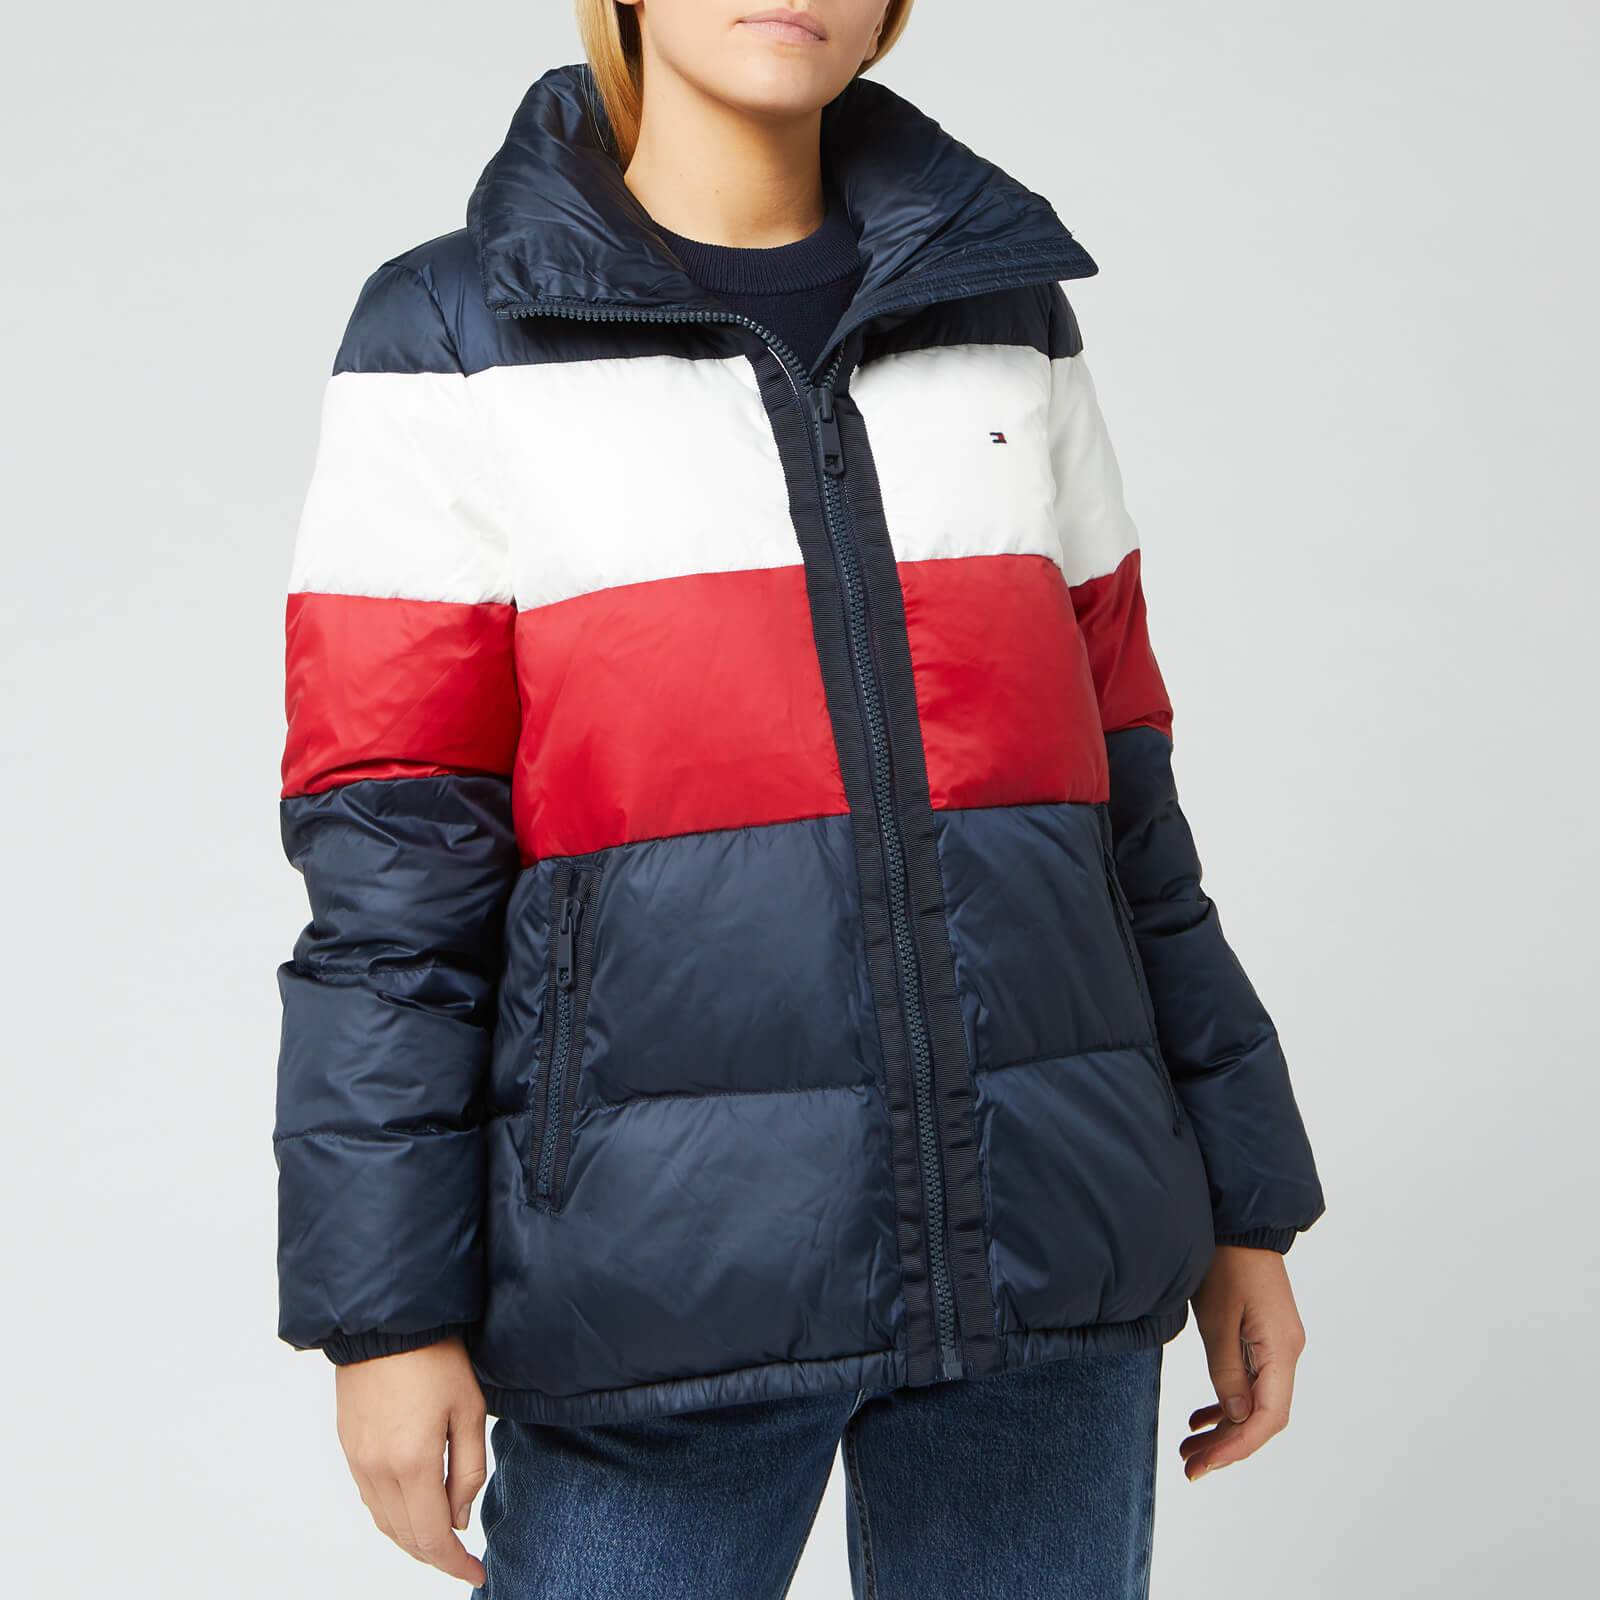 Tommy Hilfiger Women's Naomi Recycled Down Jacket - Rwb Colour Block - S